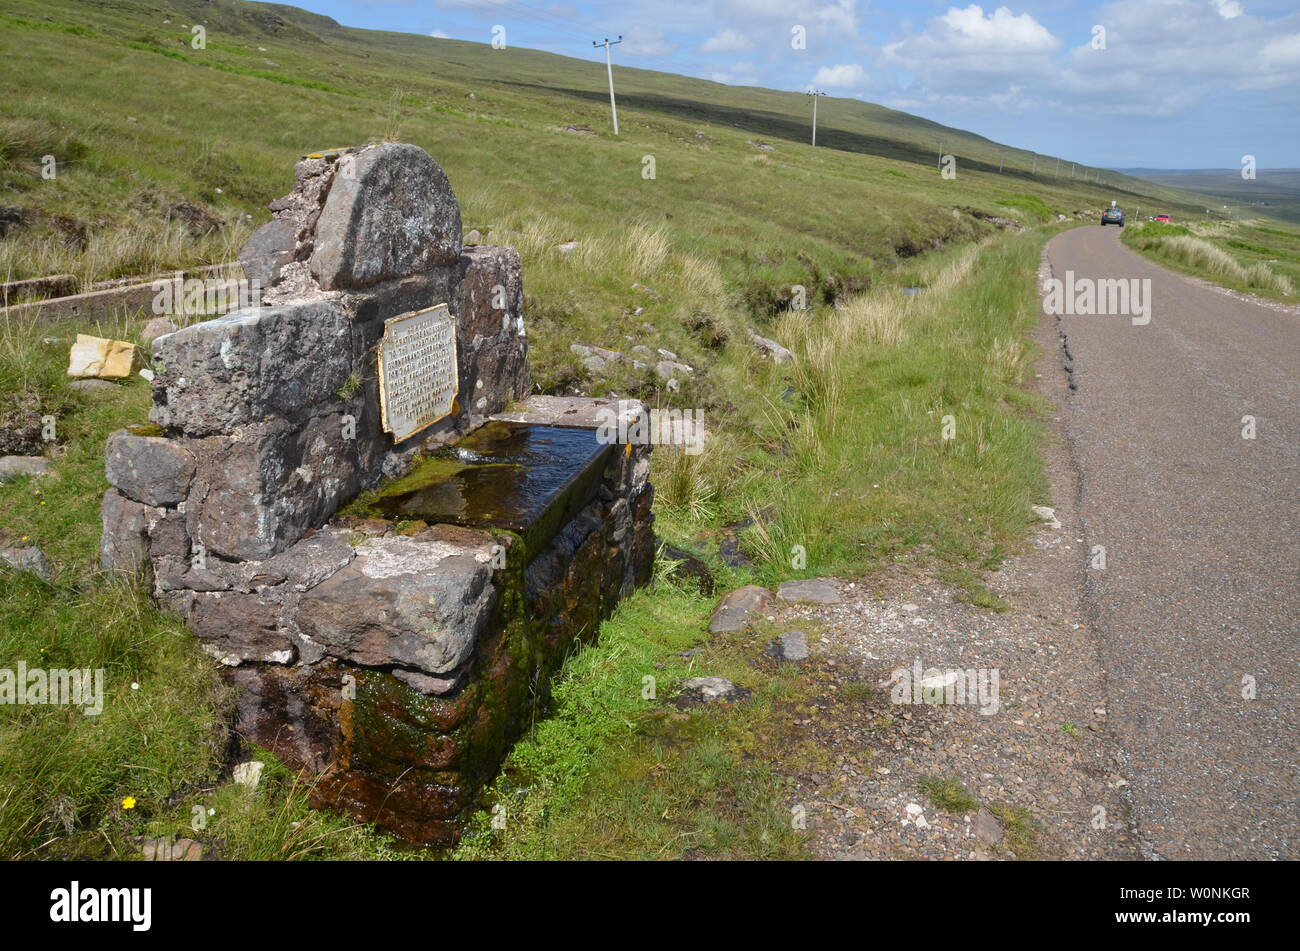 A well by the side of the A 838 road in the Scottish Highlands, part of the North Coast 500 tourist route. - Stock Image